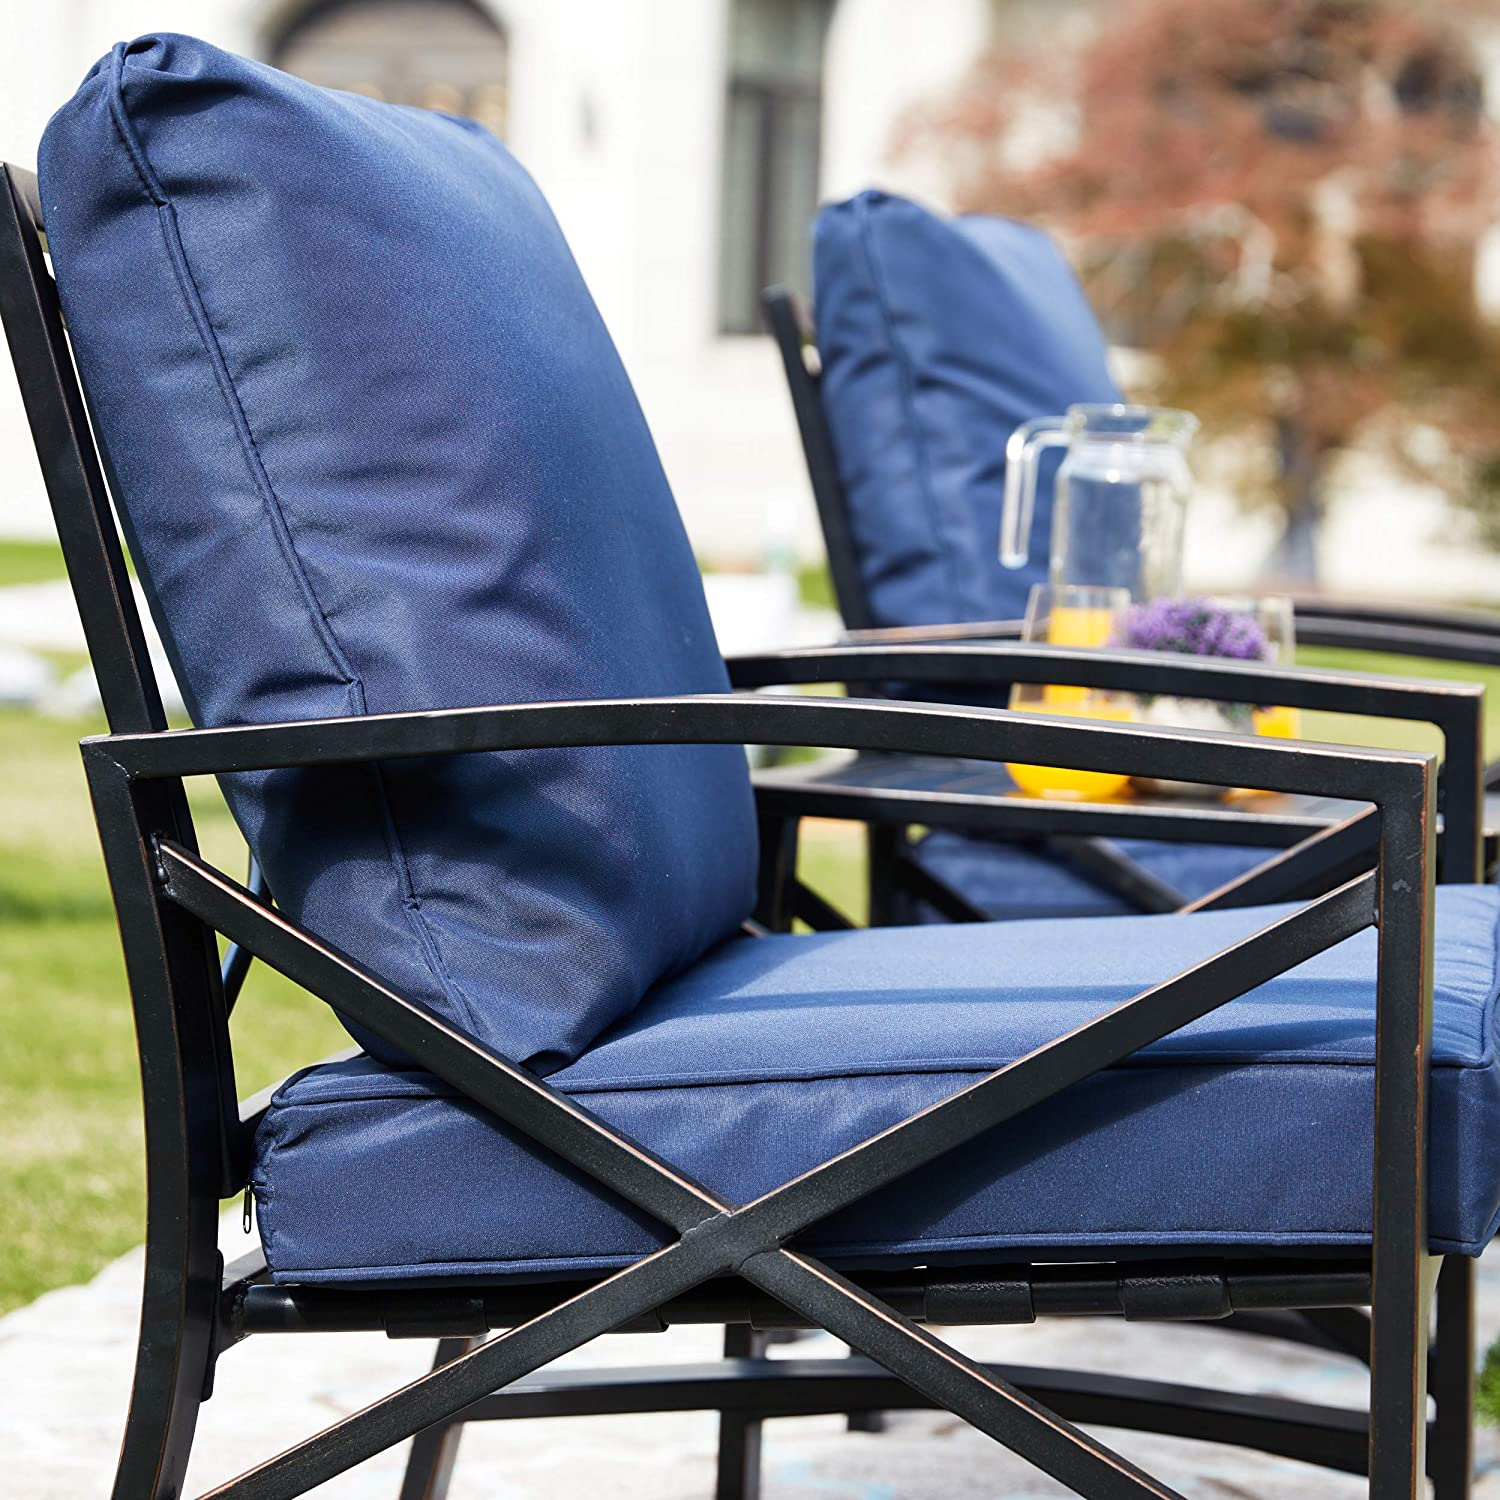 Khaki LOKATSE HOME 3 Piece Outdoor Set Chairs Cushioned Patio Chairs Set Metal Patio Bistro Furniture Set with Coffee Table